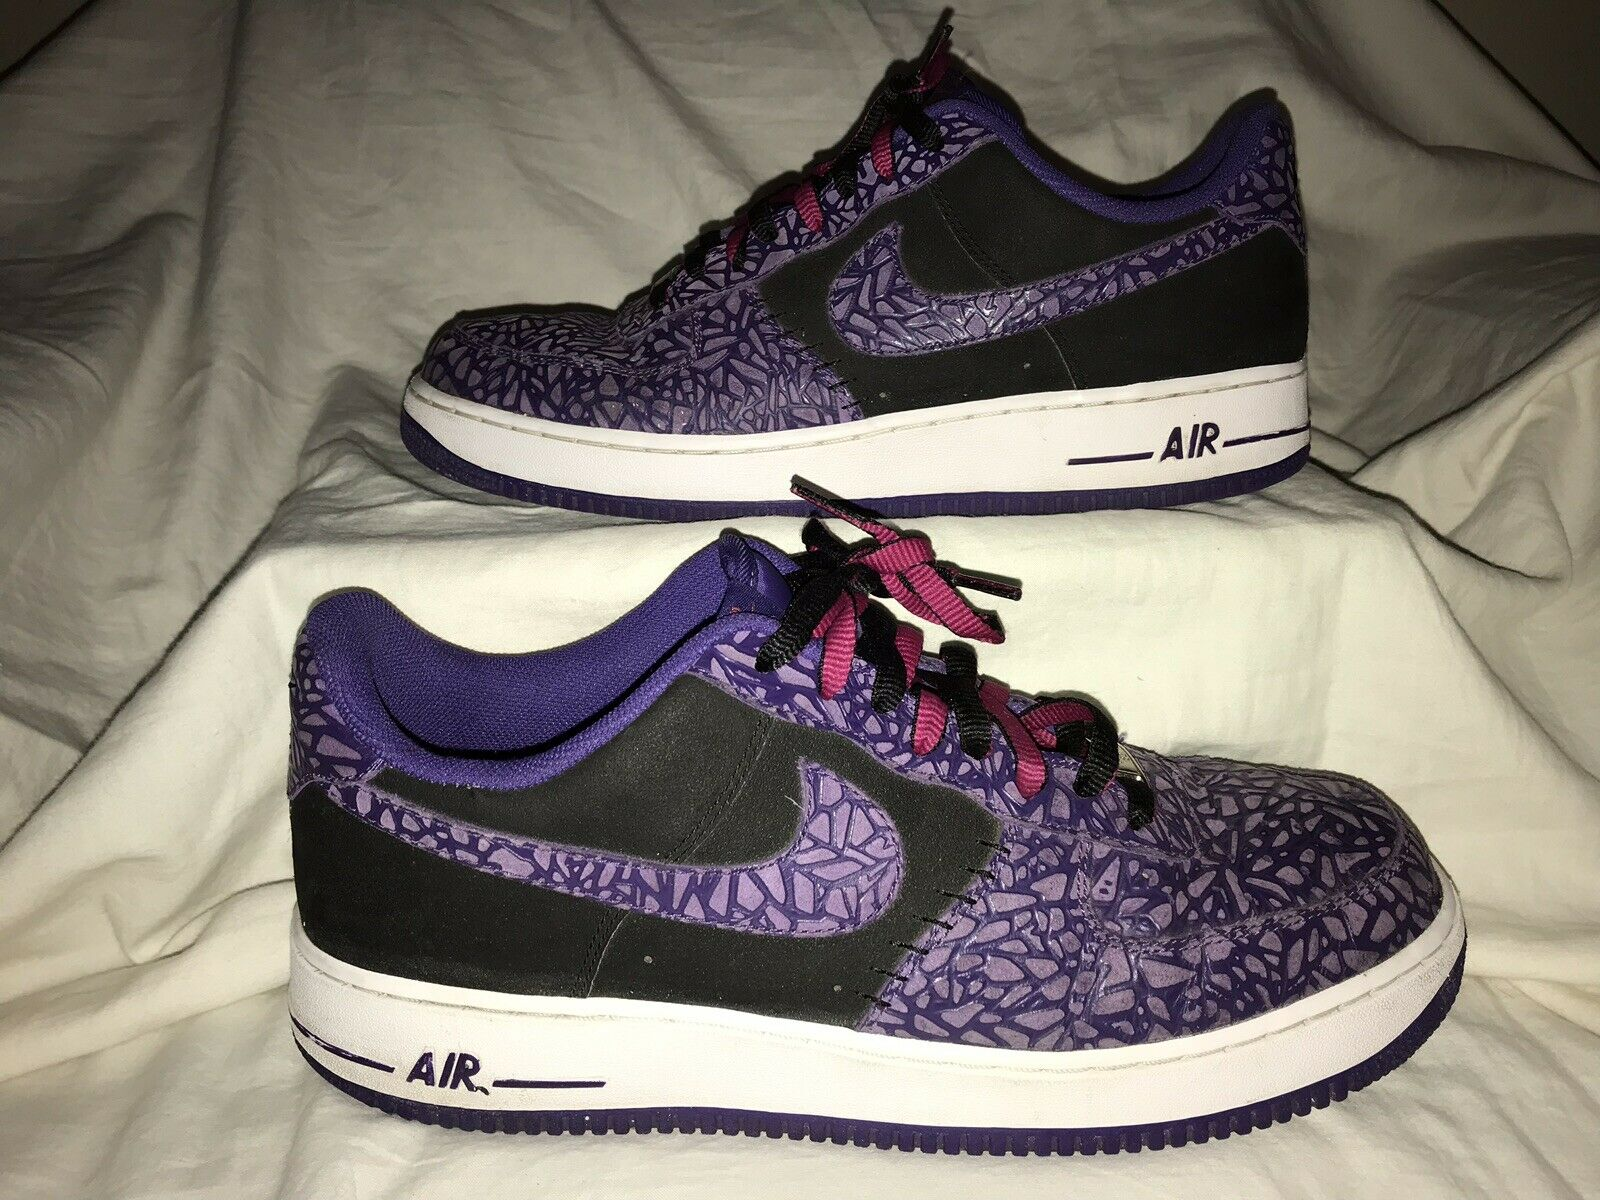 Nike Air Force 1 Low Top Size 11.5 Purple Mens shoes